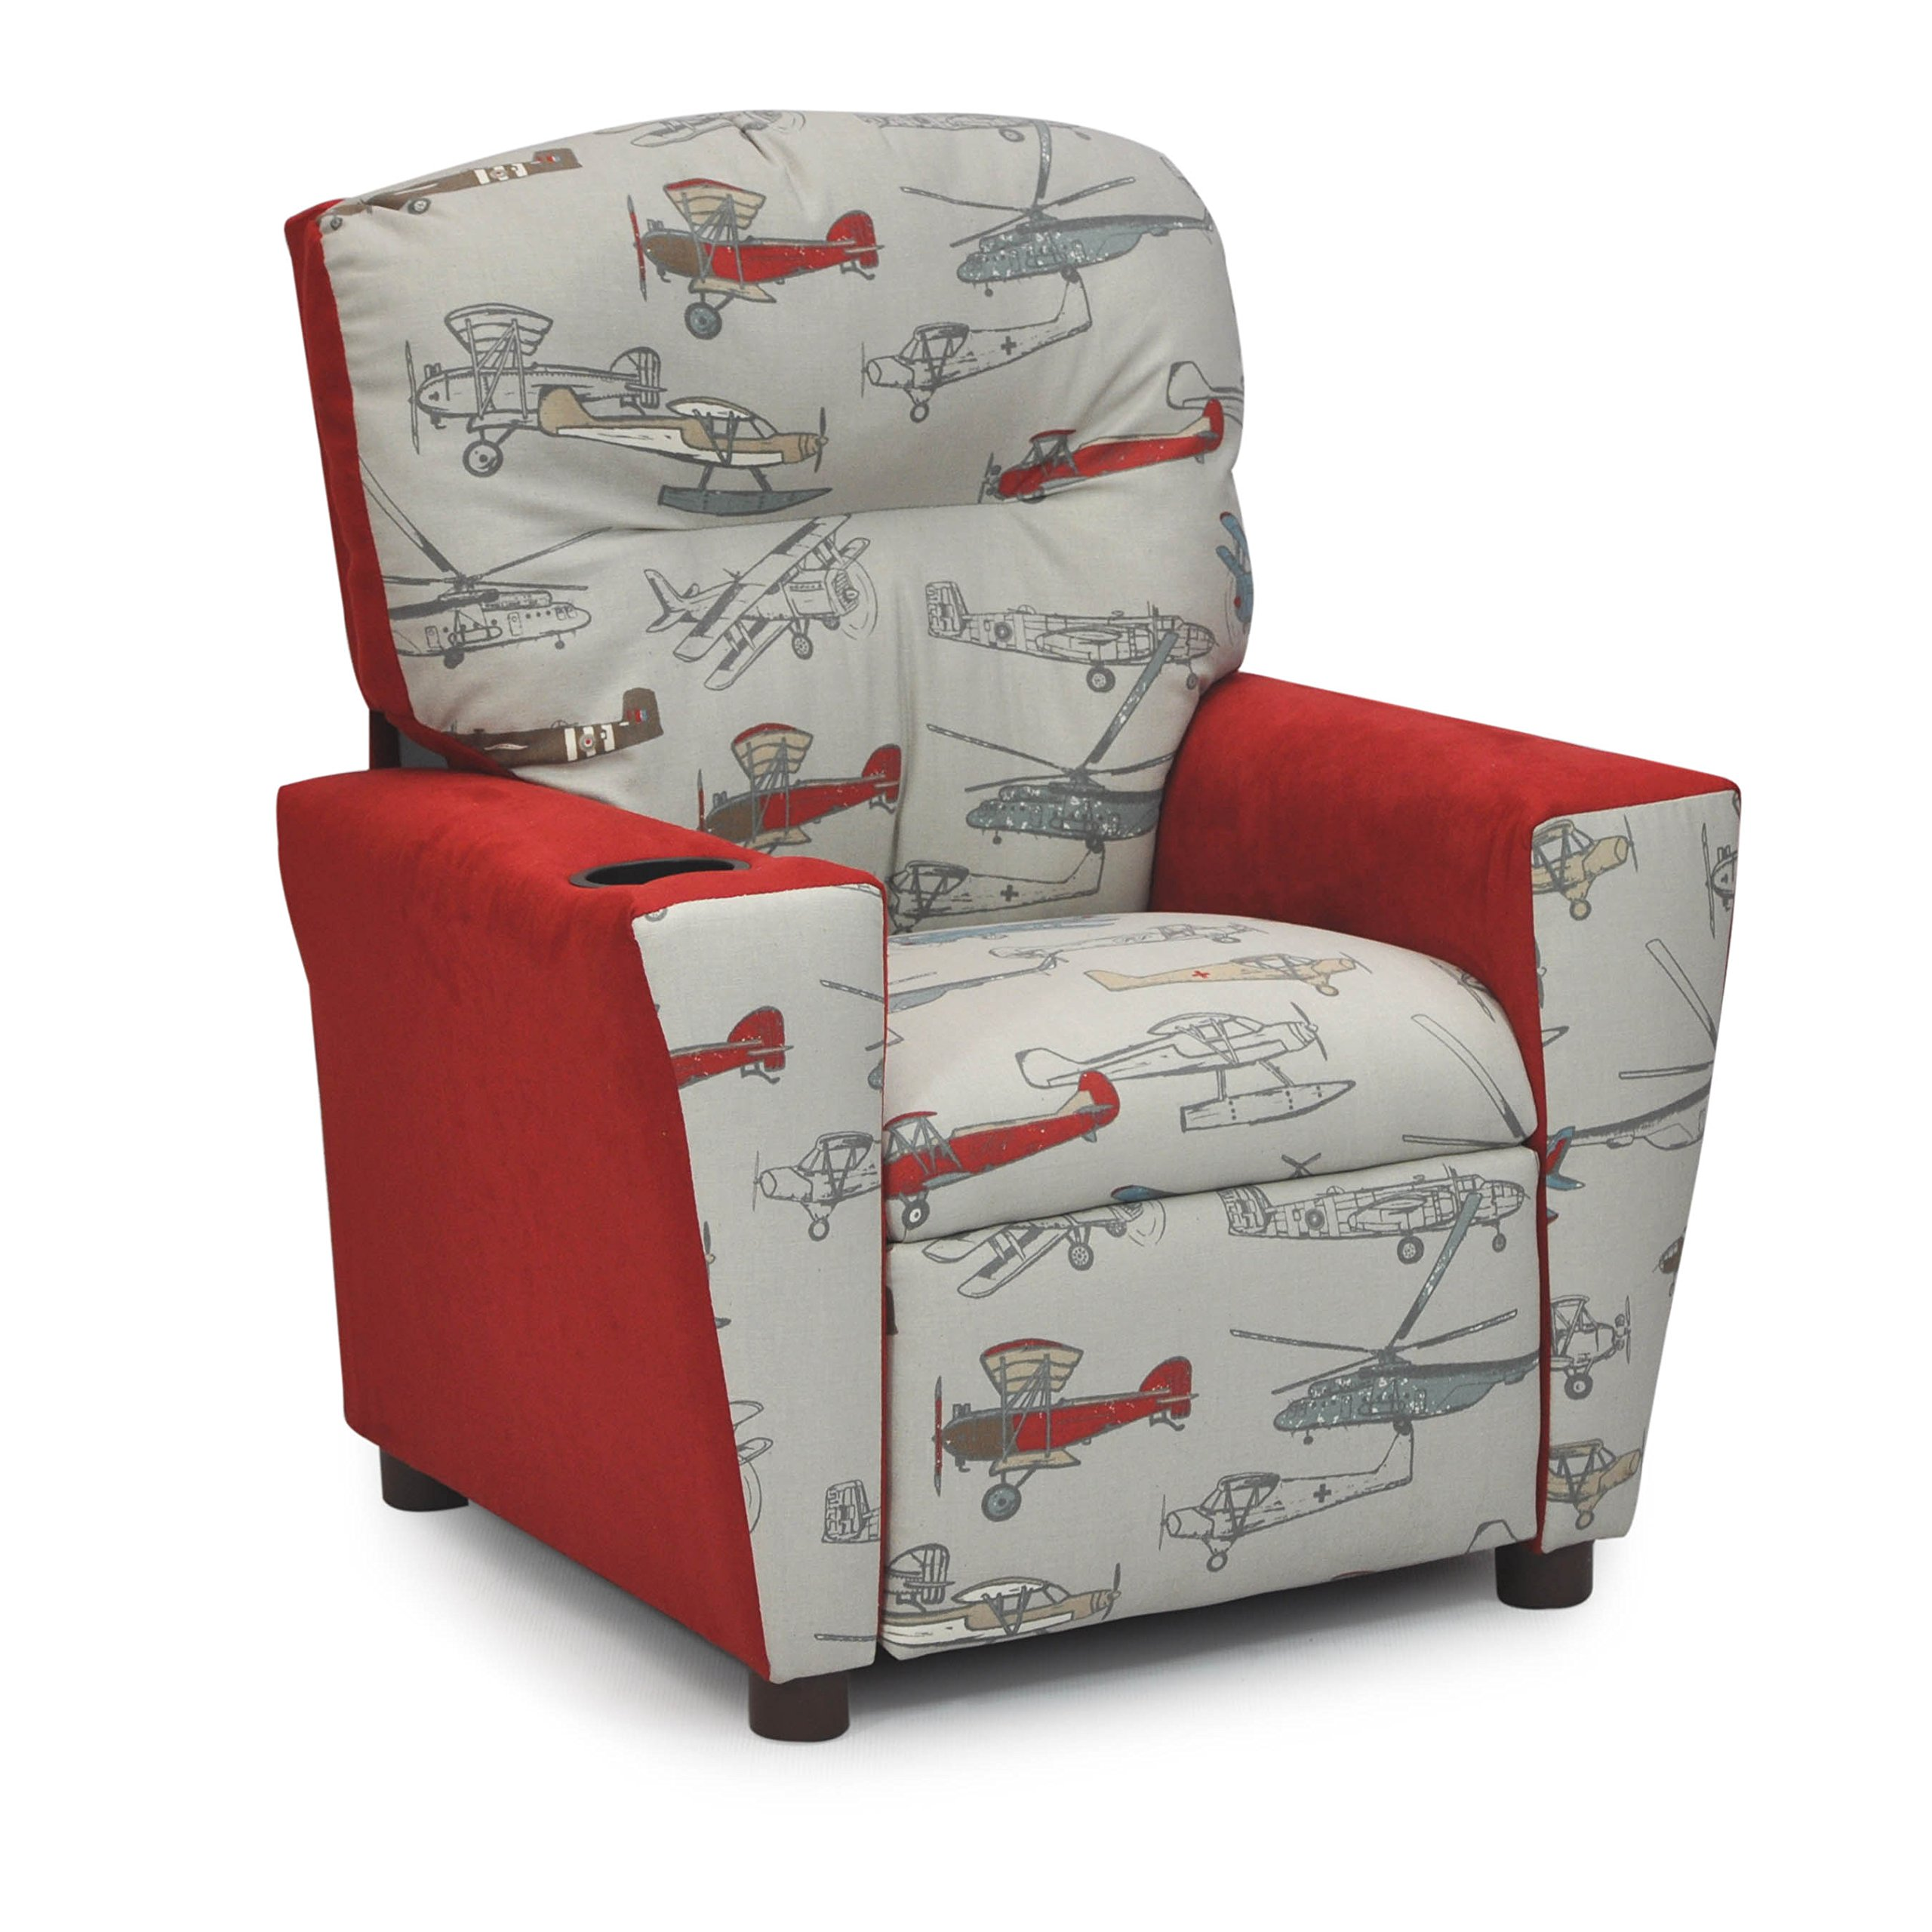 Childrens Recliner with Cup Holders - Santa's Favorite Juvenile Upholstered Chair - Best for Kids Room Decor Featuring Sports or Airplanes by Fun Future